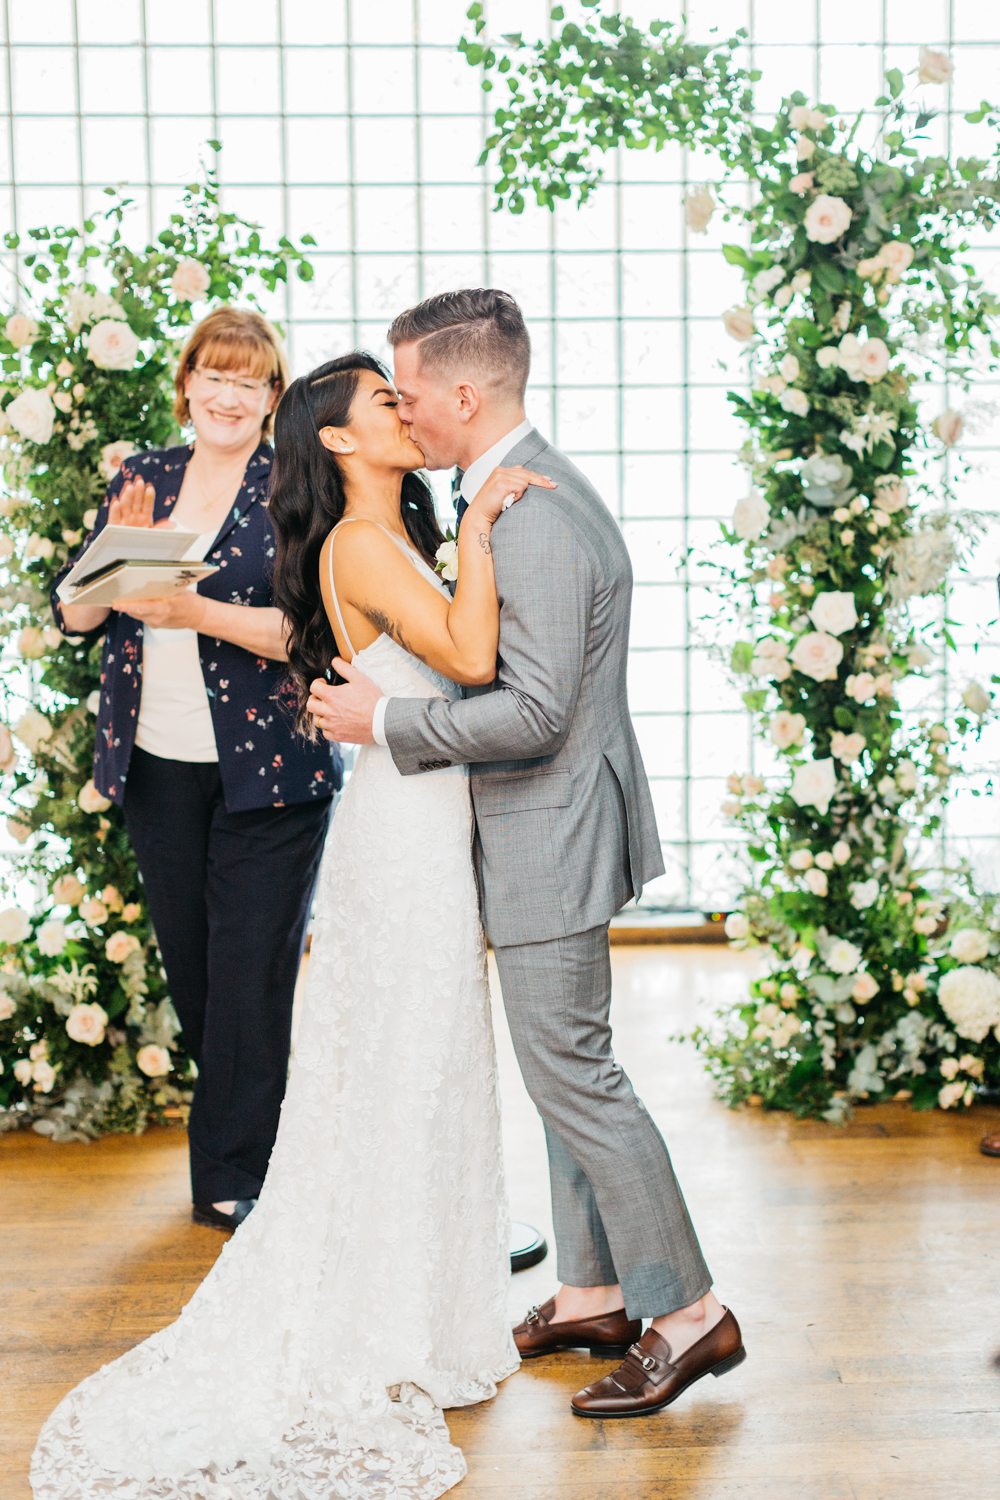 Bride and groom's first kiss as a married couple at The Glass Factory